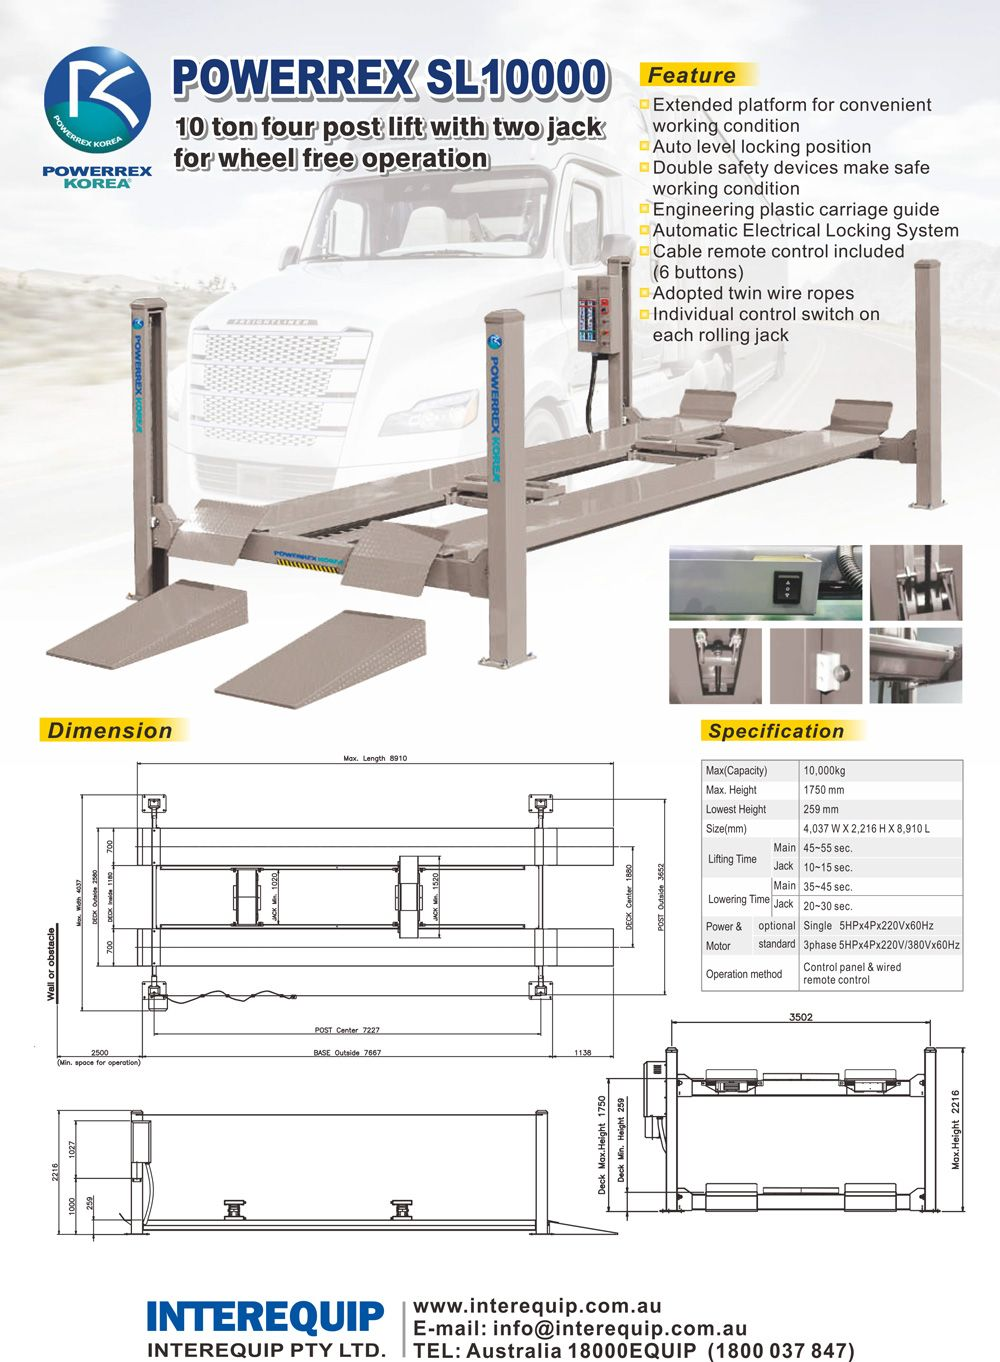 Pin by Interequip on Automotive Equipment and Tools | Lifted